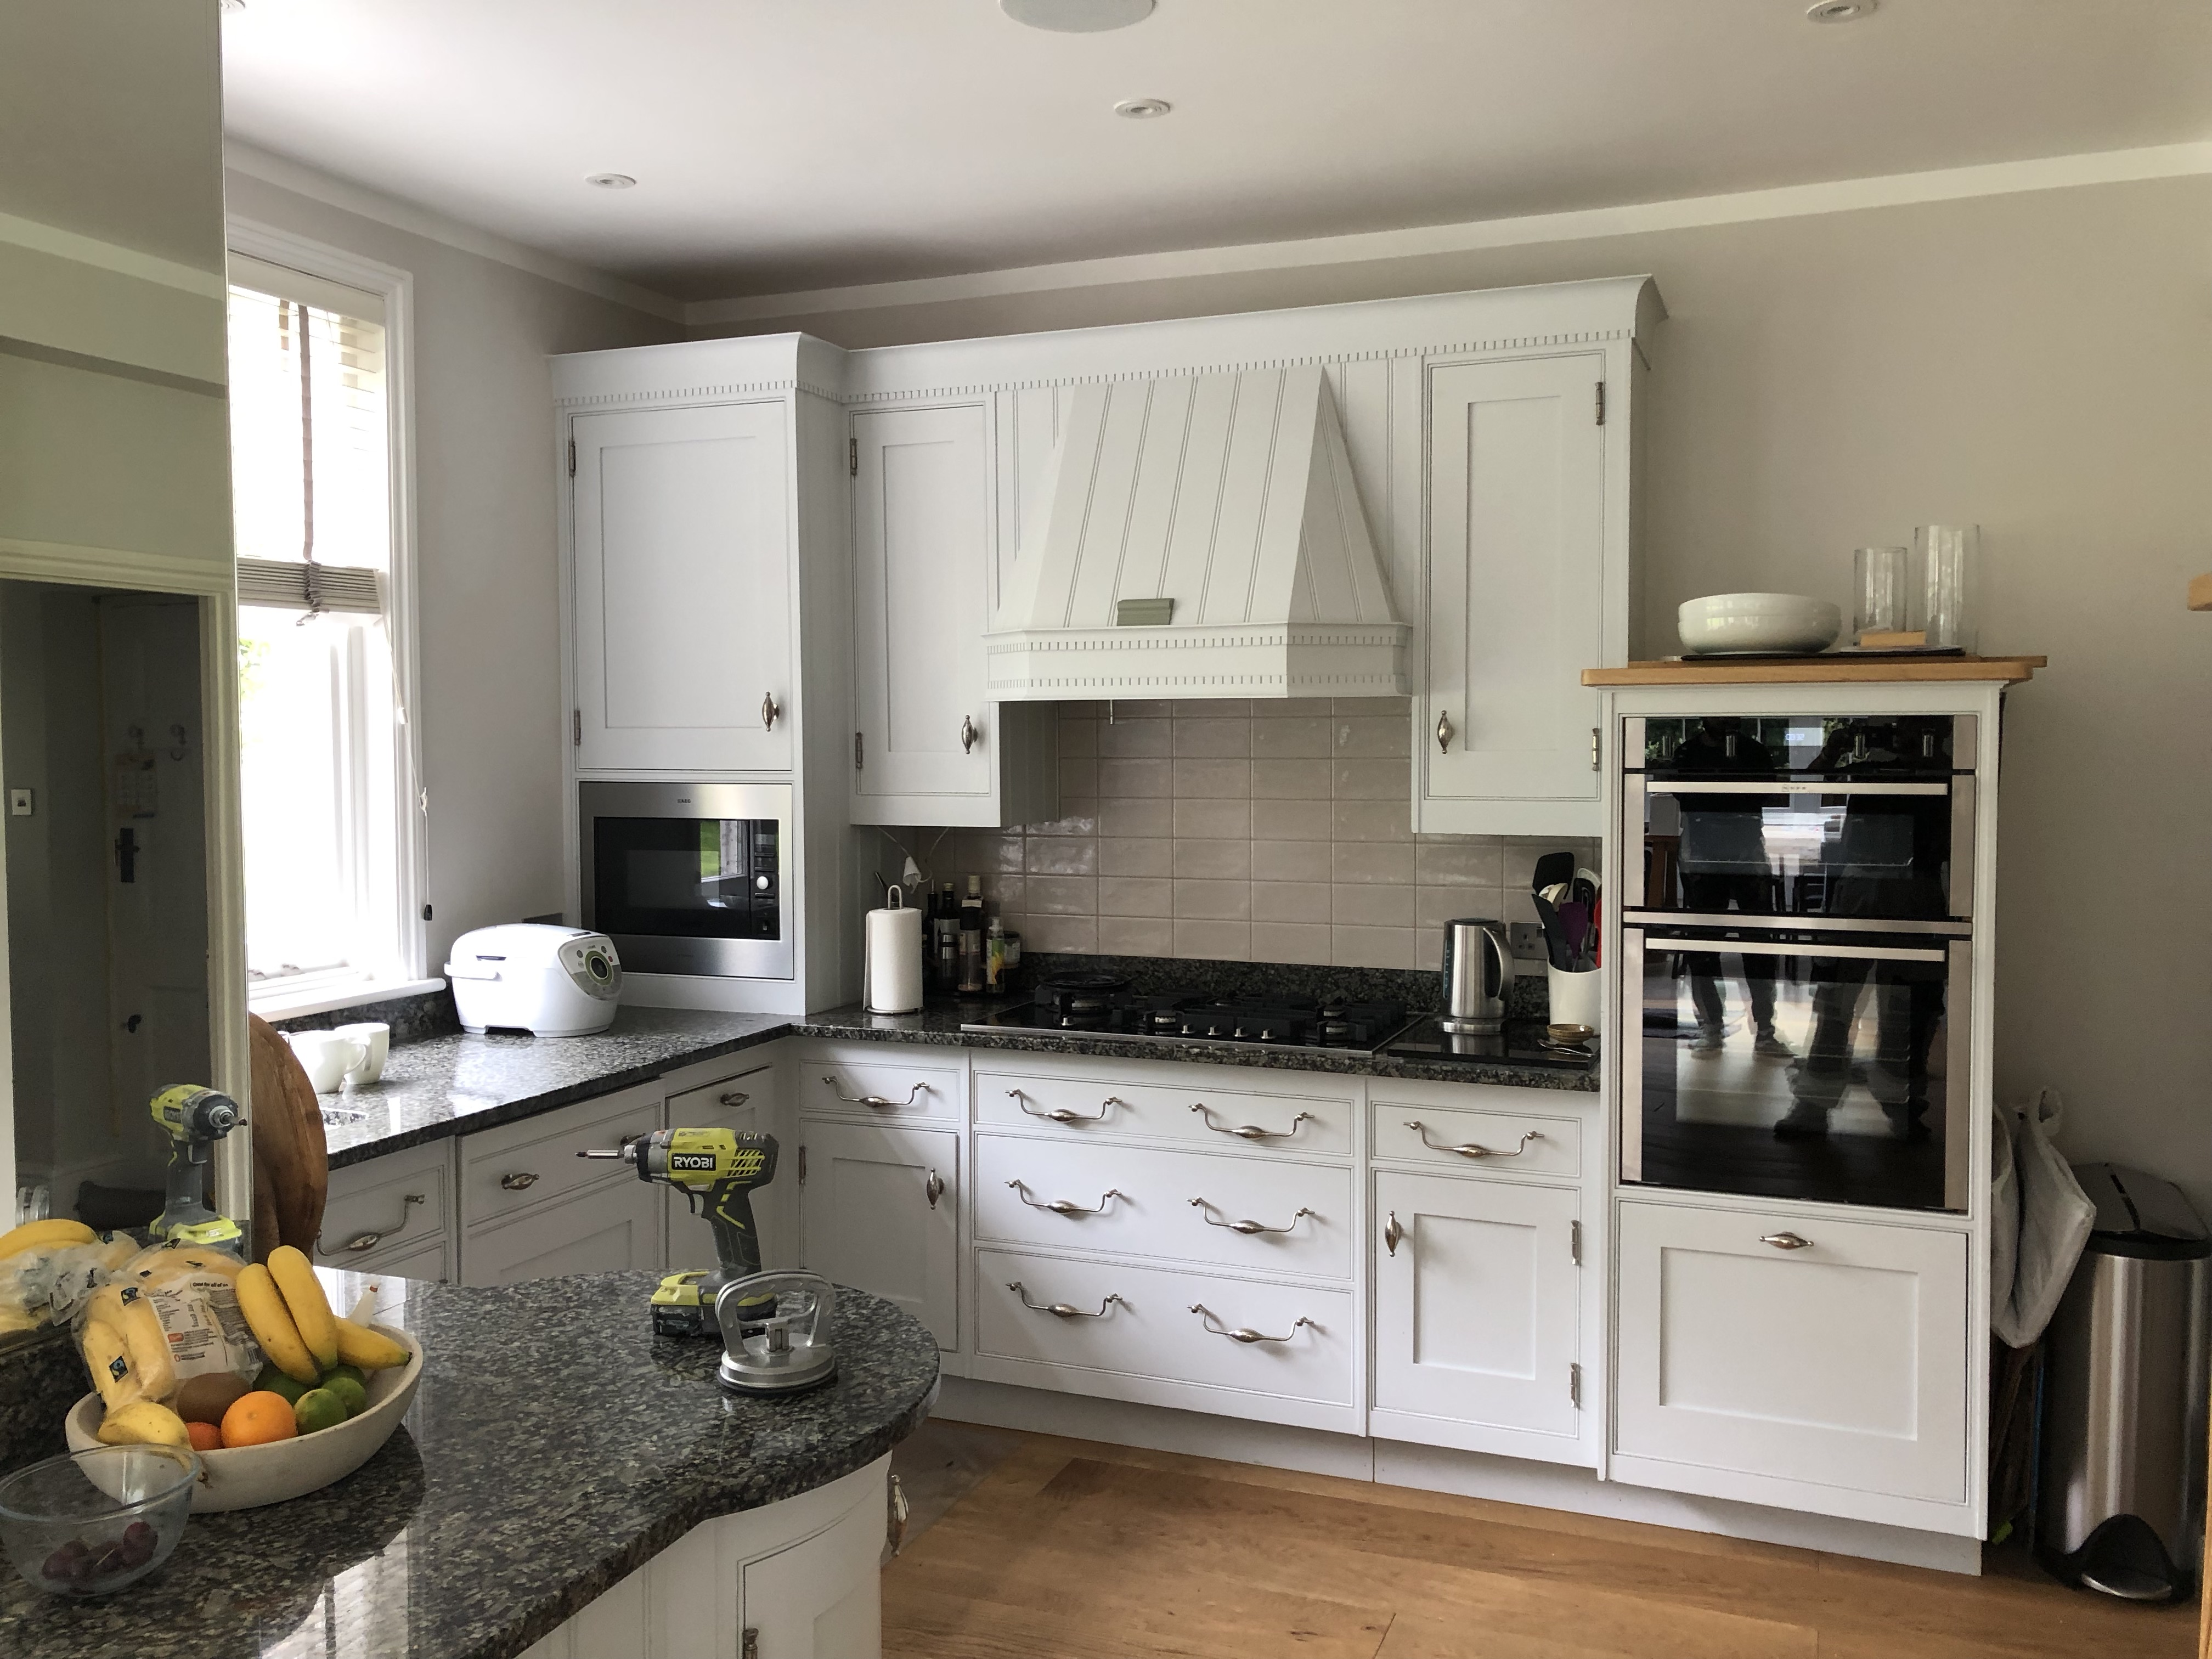 Kitchen cabinet painter Oxford Oxfordshire - Hand Painted ...